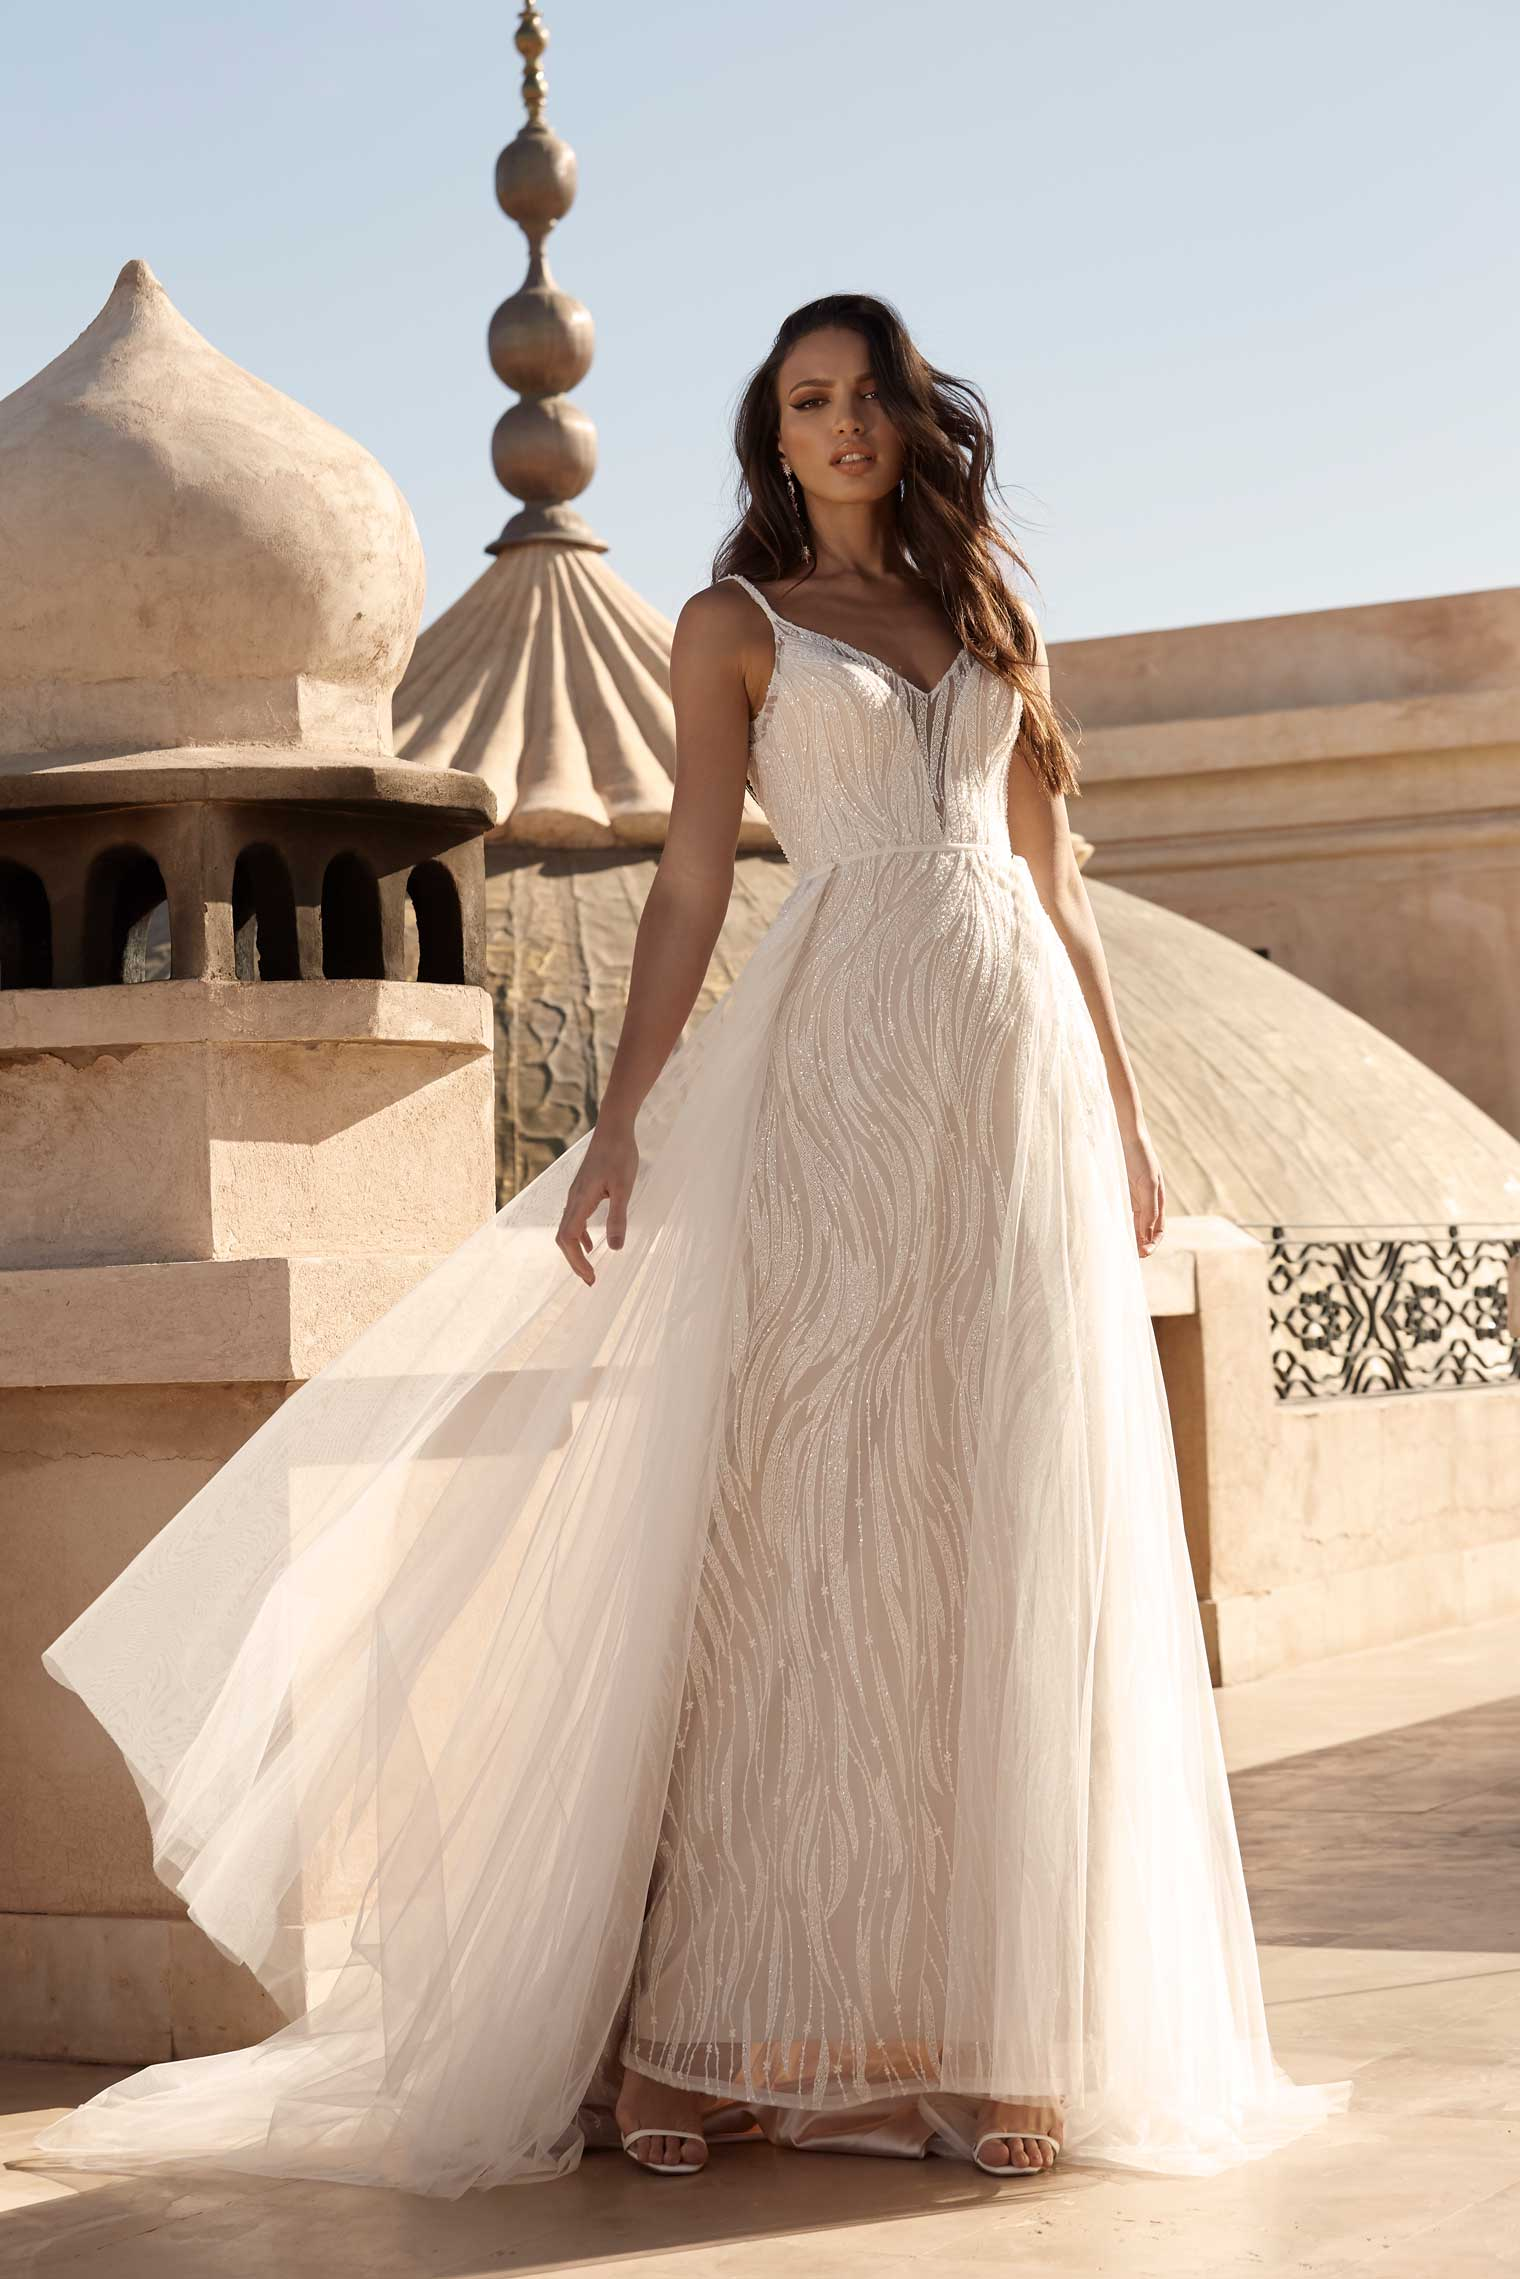 AUSTIN-ML16622-FULL-LENGTH-EMBROIDERED-GOWN-WITH-SEQUIN-EMBELLISHMENTS-V-NECKLICK-AND-LOW-BACK-WITH-DETACHABLE-OVERSKIRT-WEDDING-DRESS-MADI-LANE-BRIDAL1